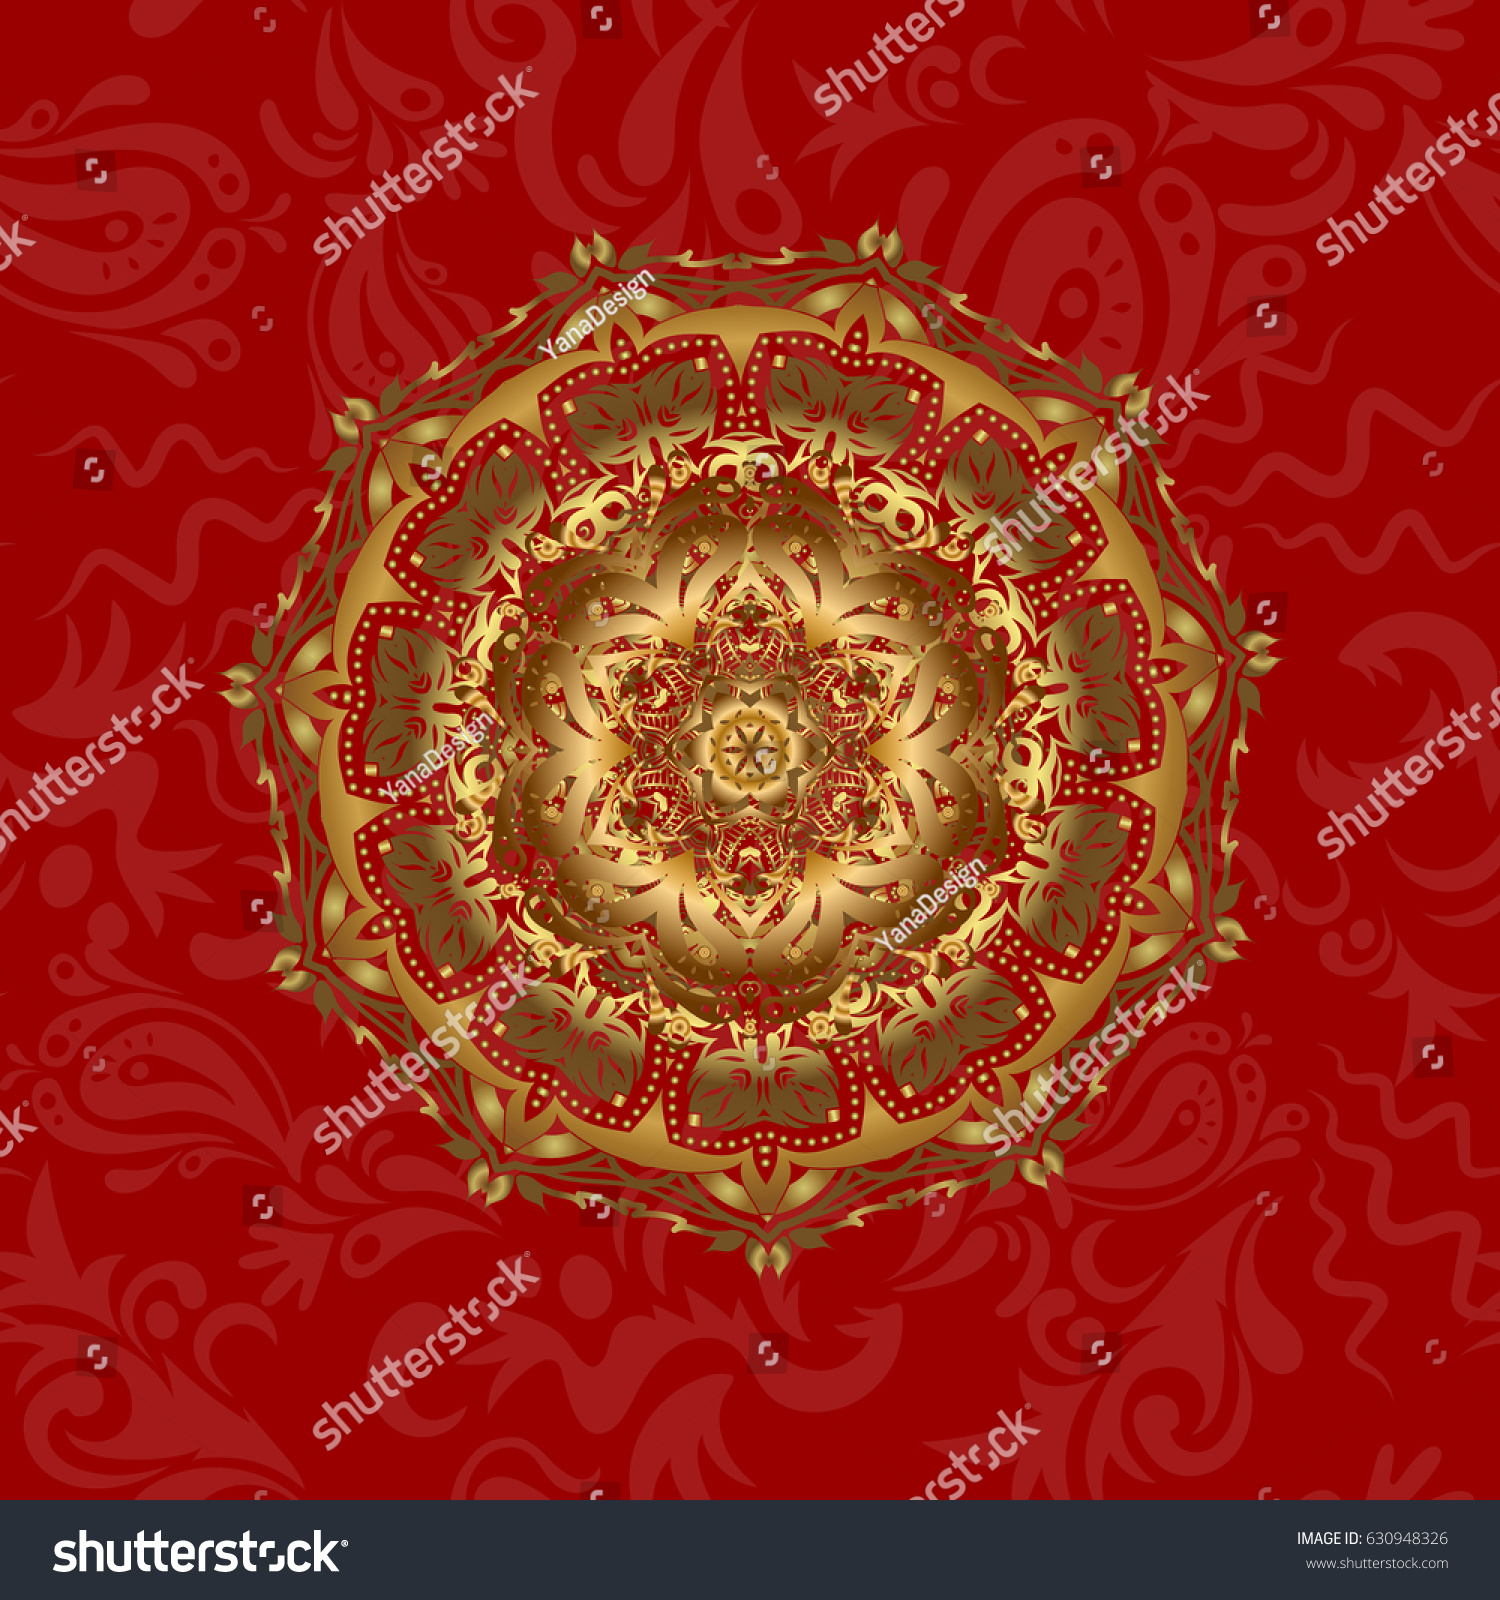 Vector Architectural Muslim Texture Design Can Stock Vector (Royalty ...